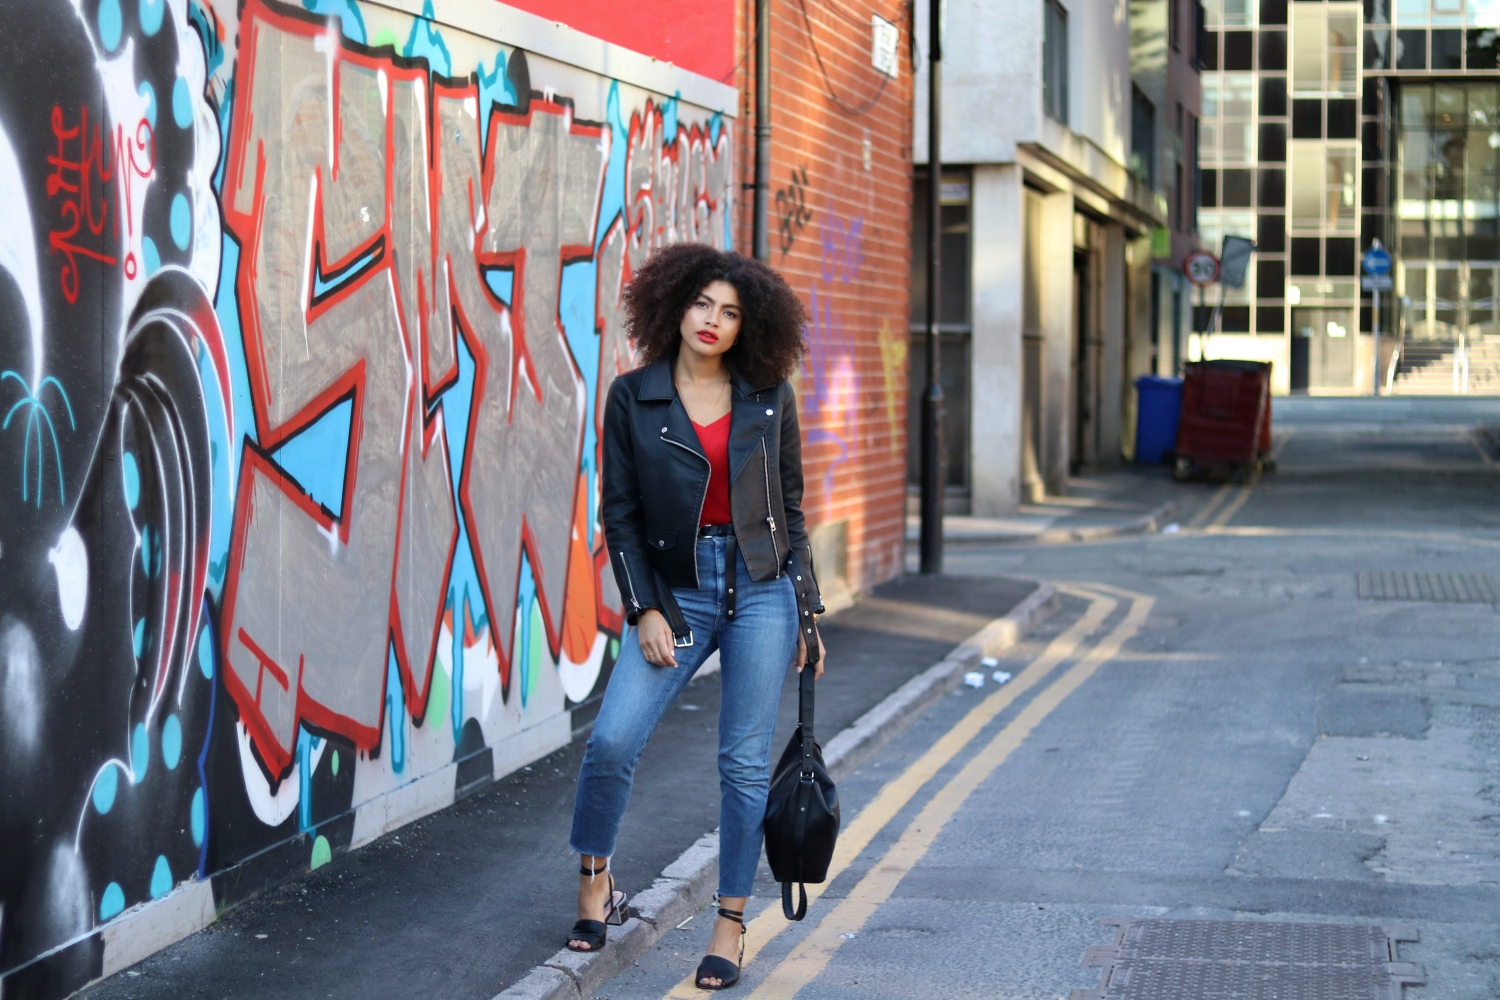 Manchester Fashion Blogger Graffiti Street Style